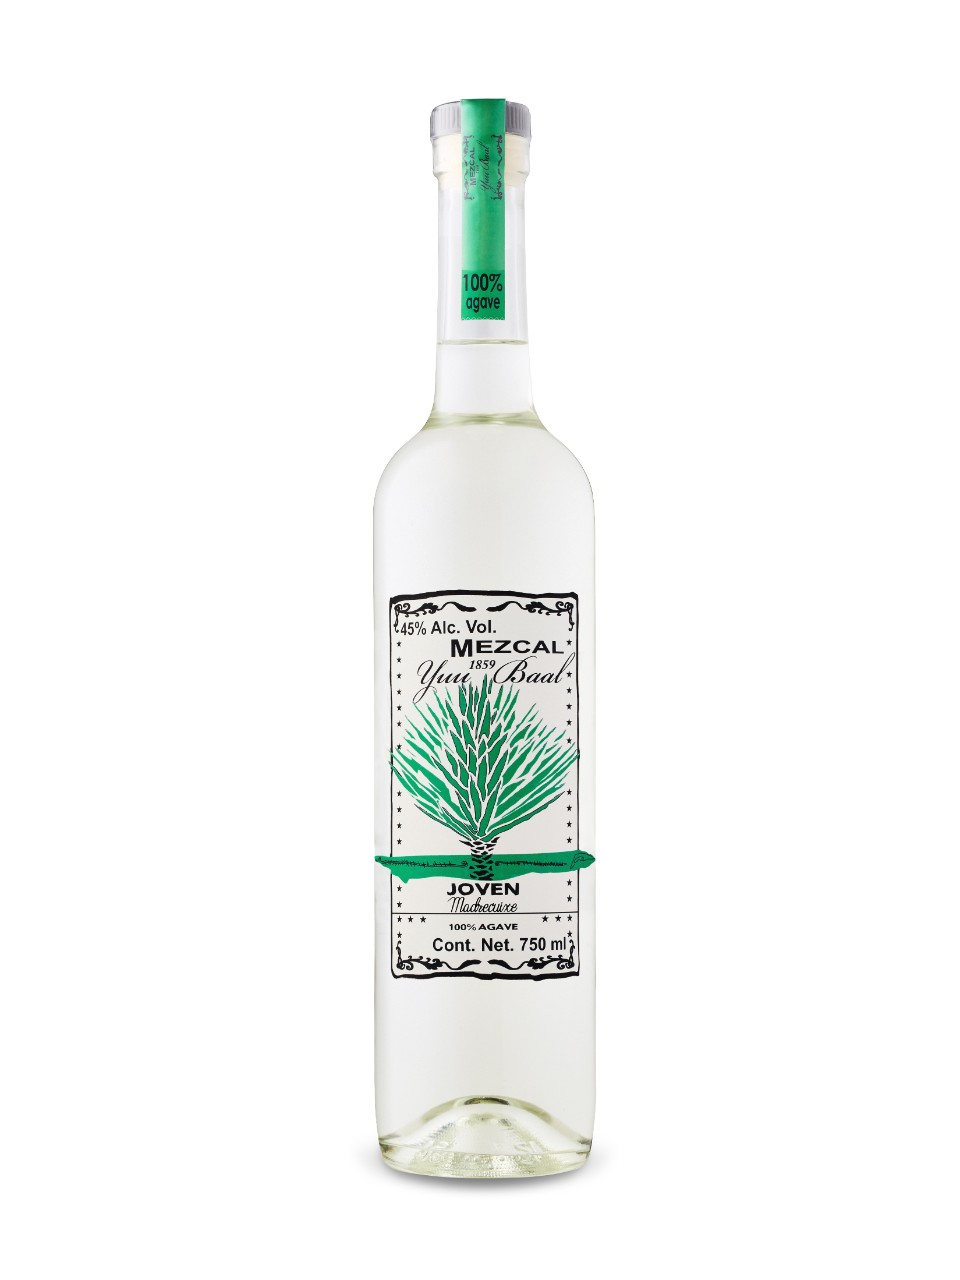 Image for Yuu Baal Joven Madrecuixe Mezcal from LCBO